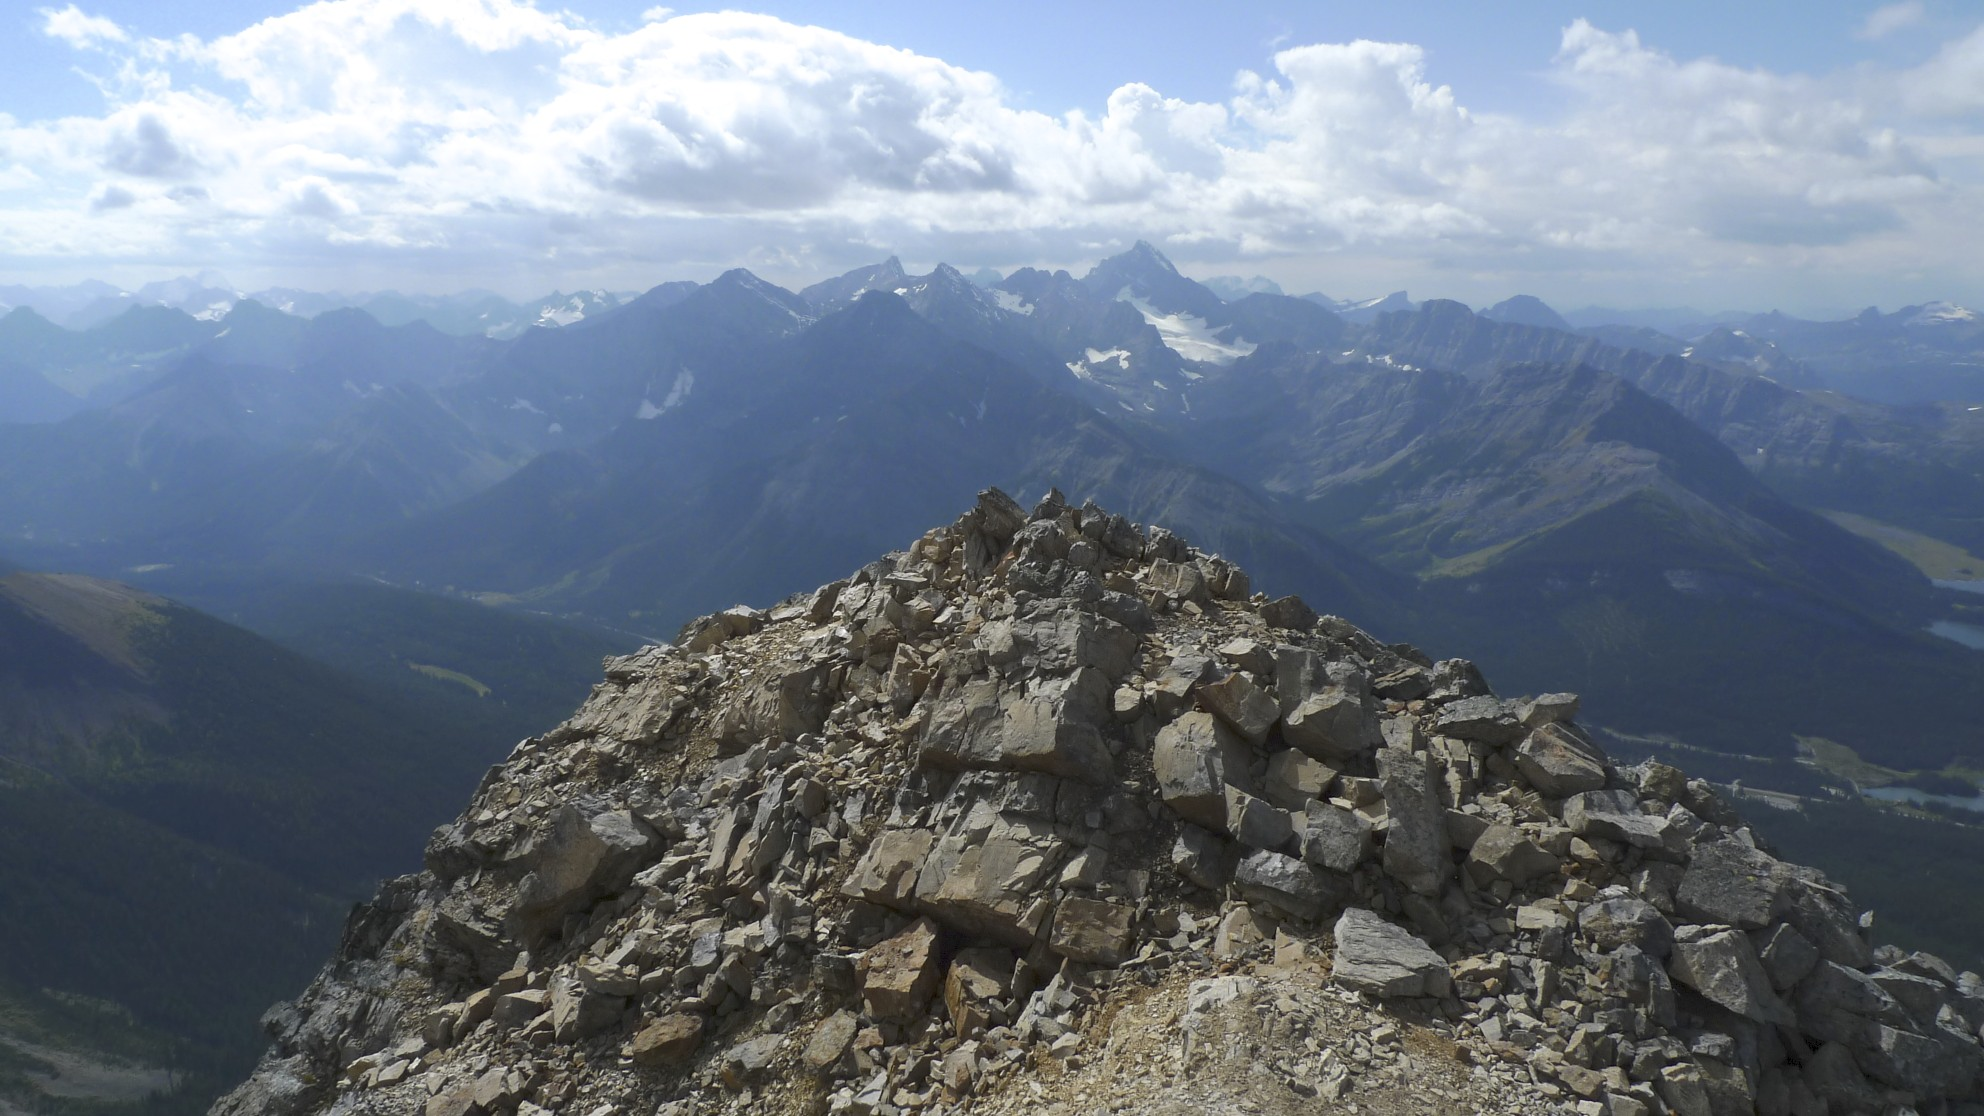 The summit of Mt. Chester 3,054m